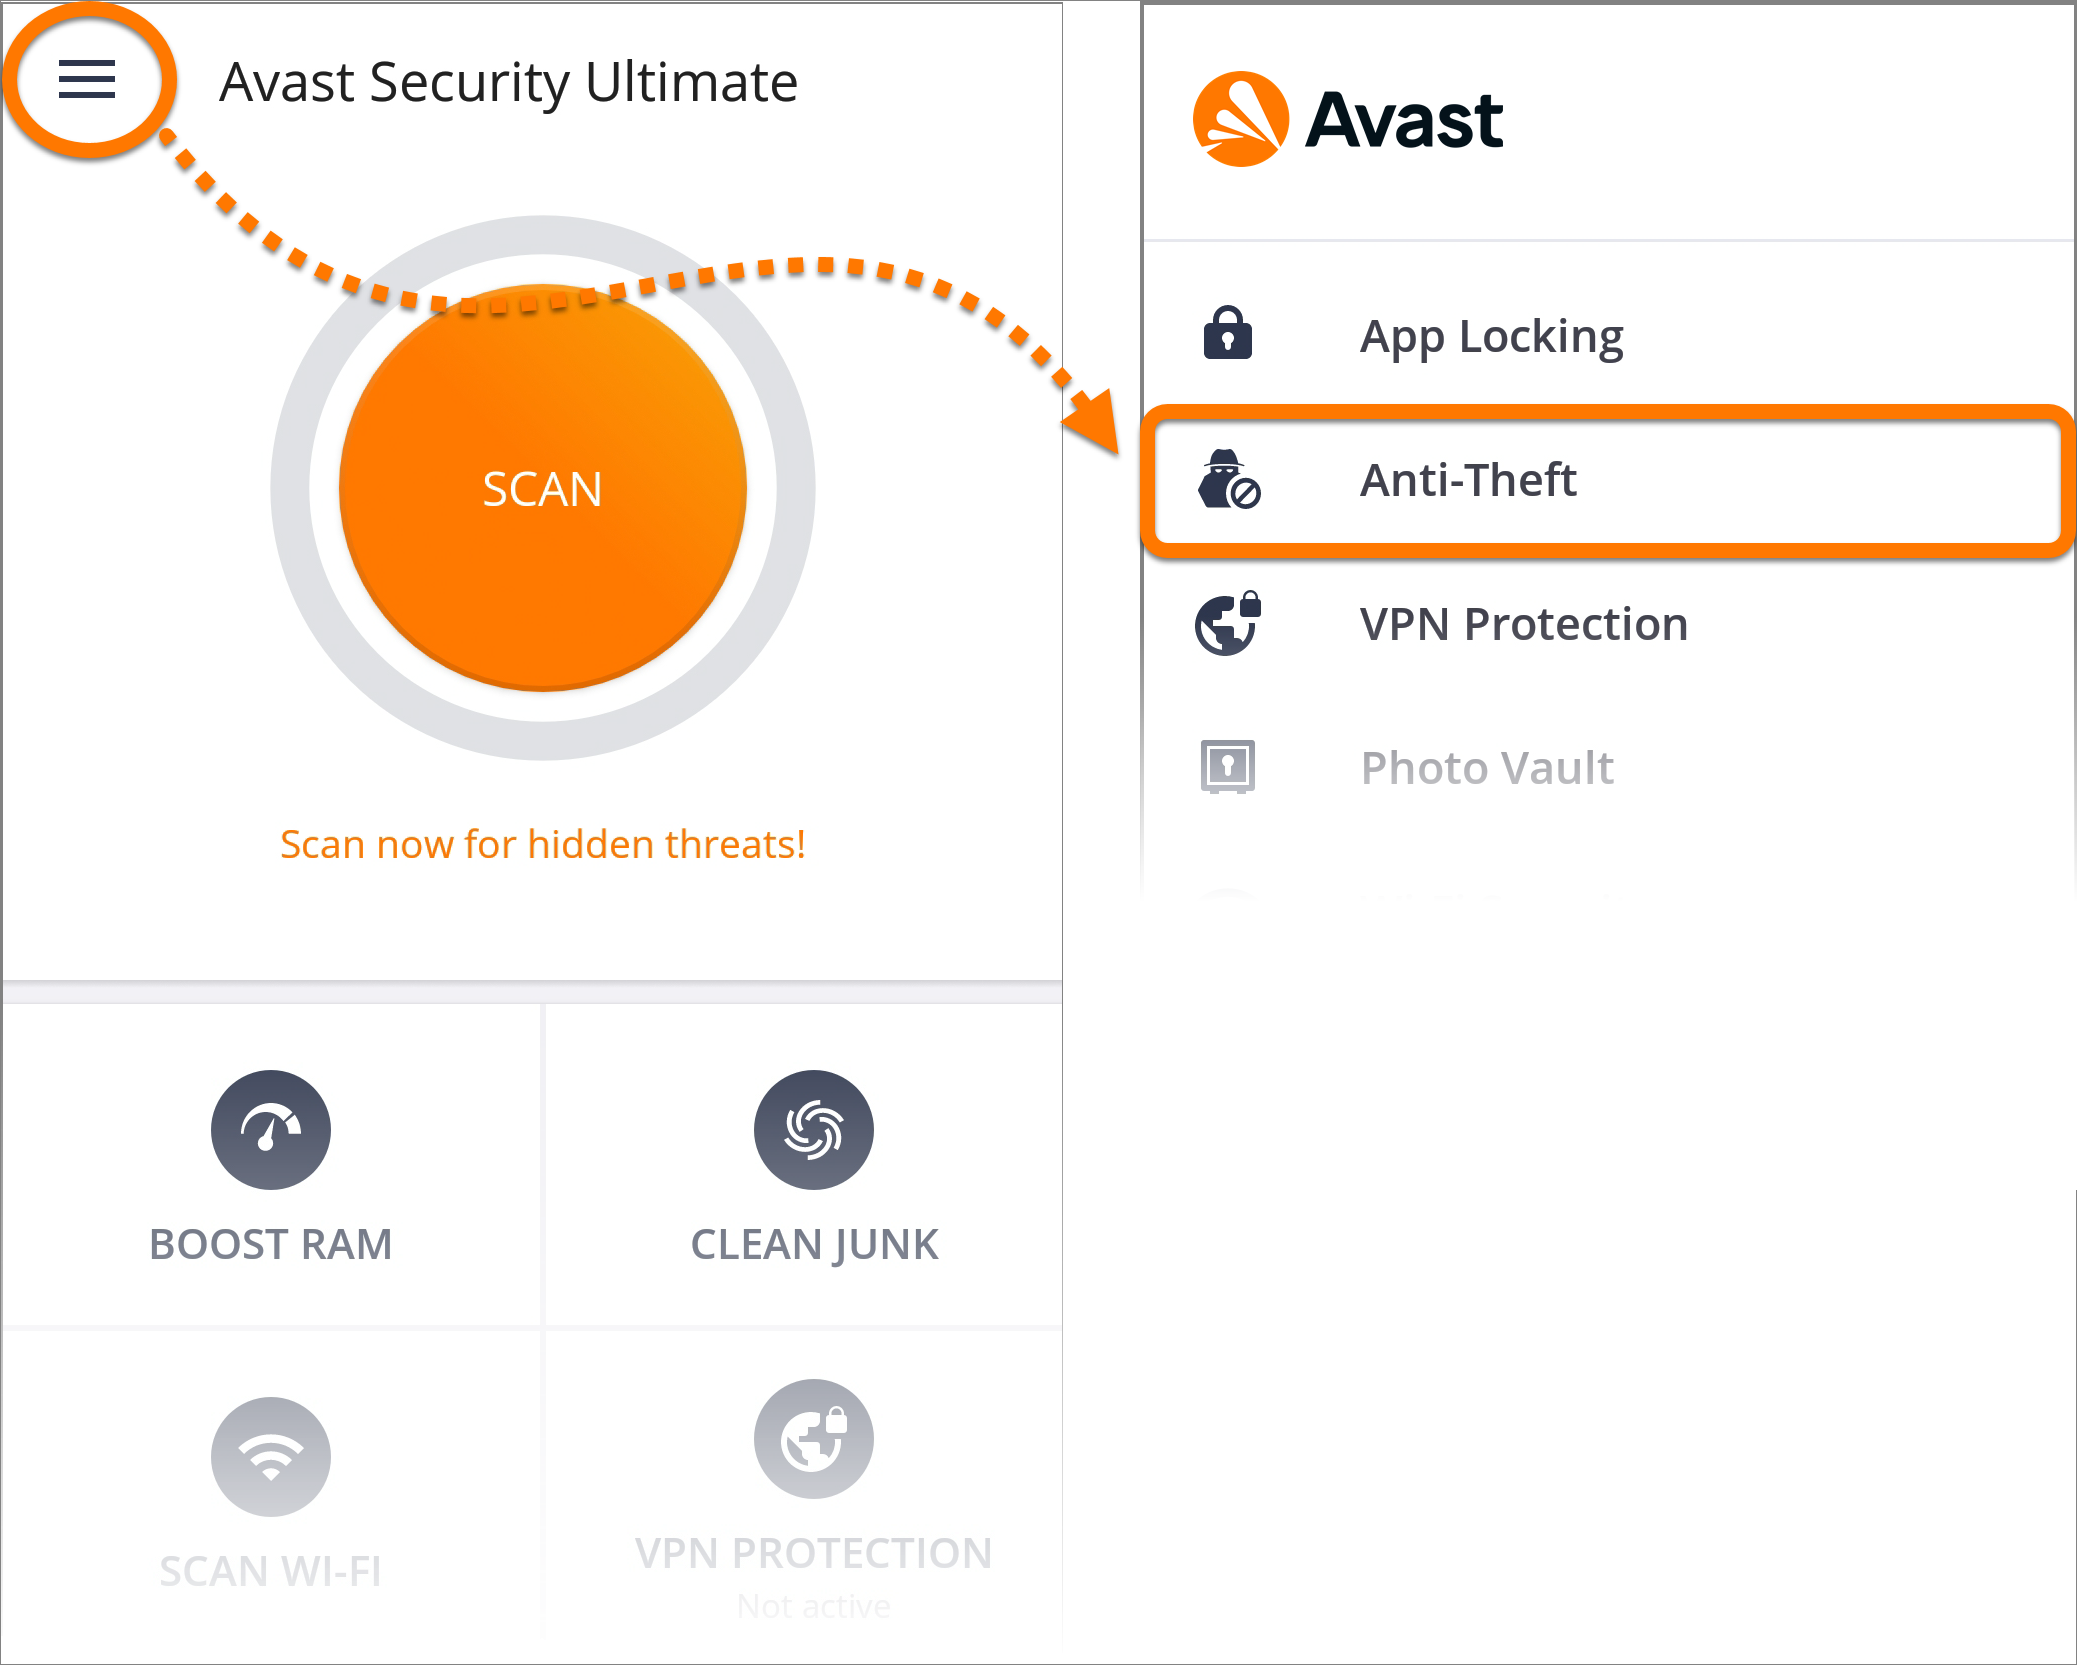 Resetting the Avast PIN for Anti-Theft in Avast Mobile Security